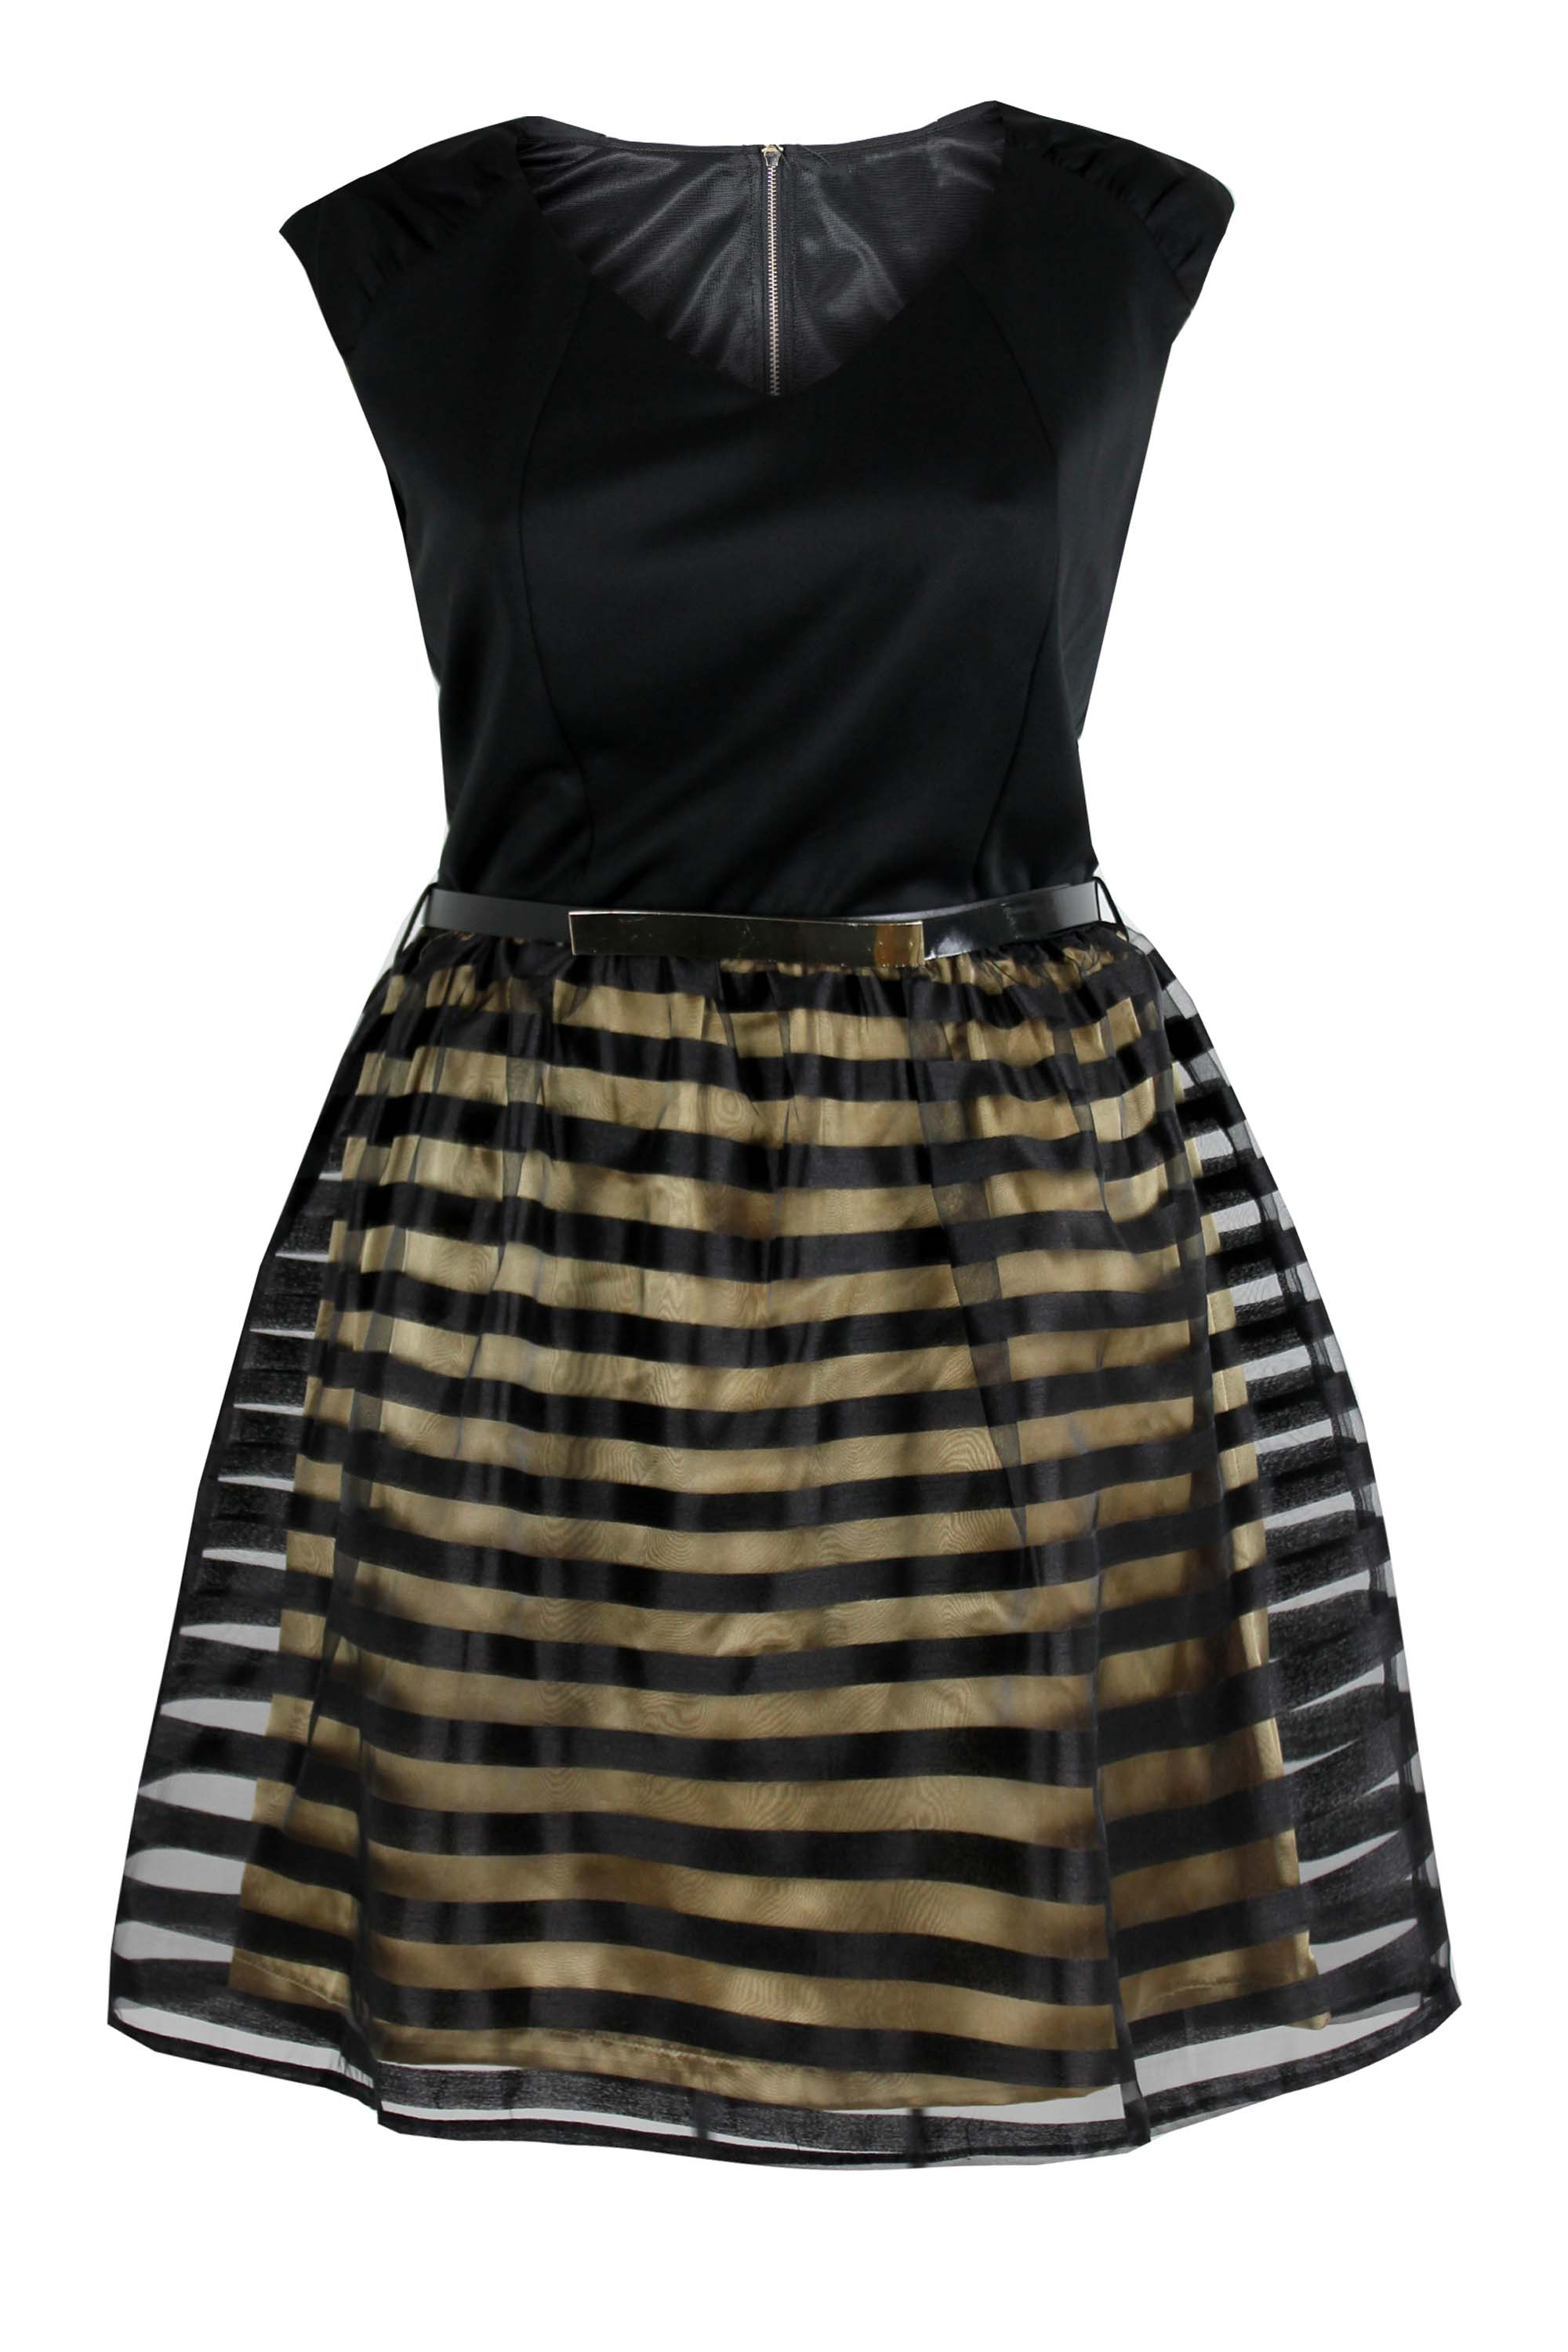 2019 year looks- Black and gold plus size dress